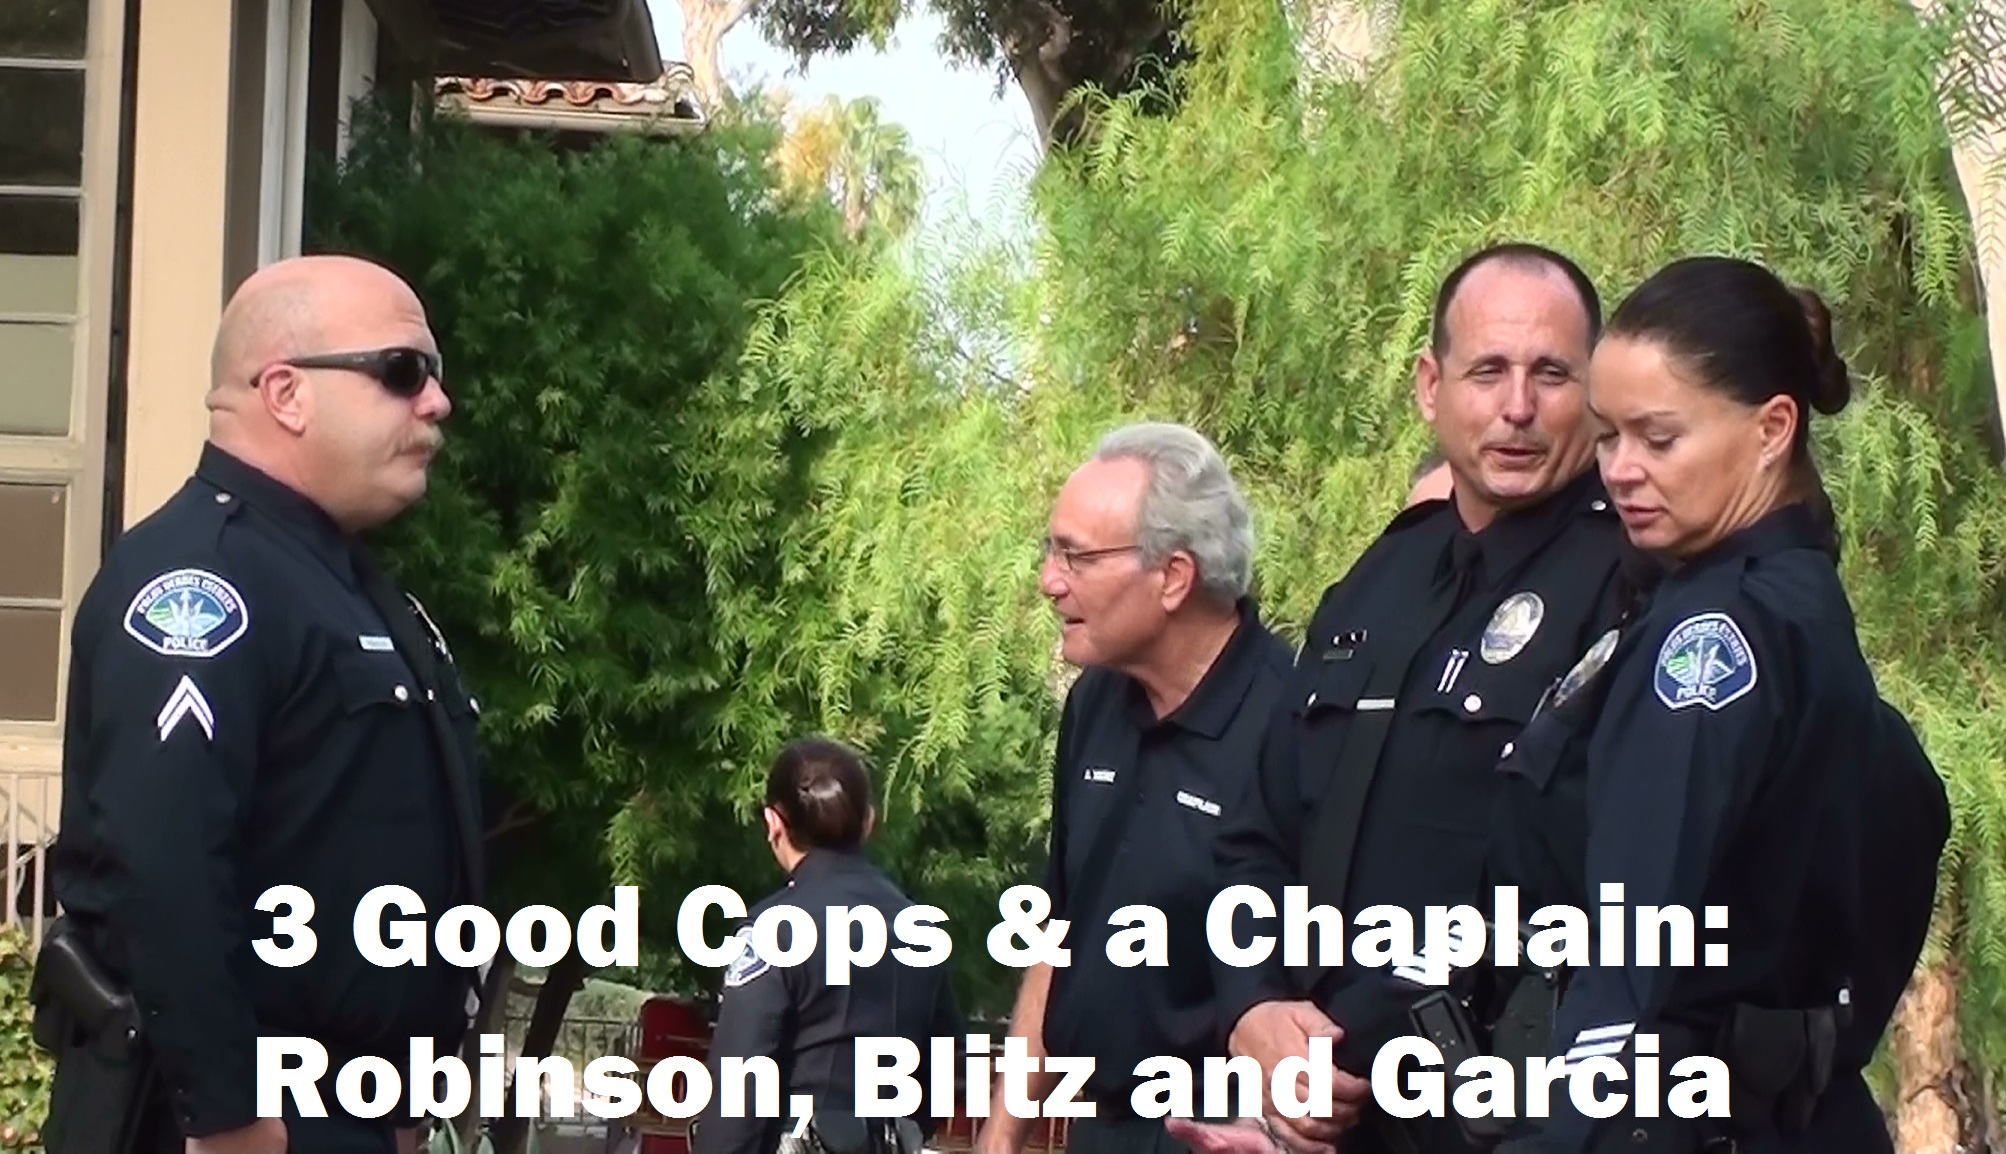 Robinson Blitz Garcia & Chaplain Photo Day 09-22-2015 - Cropped & Annotated